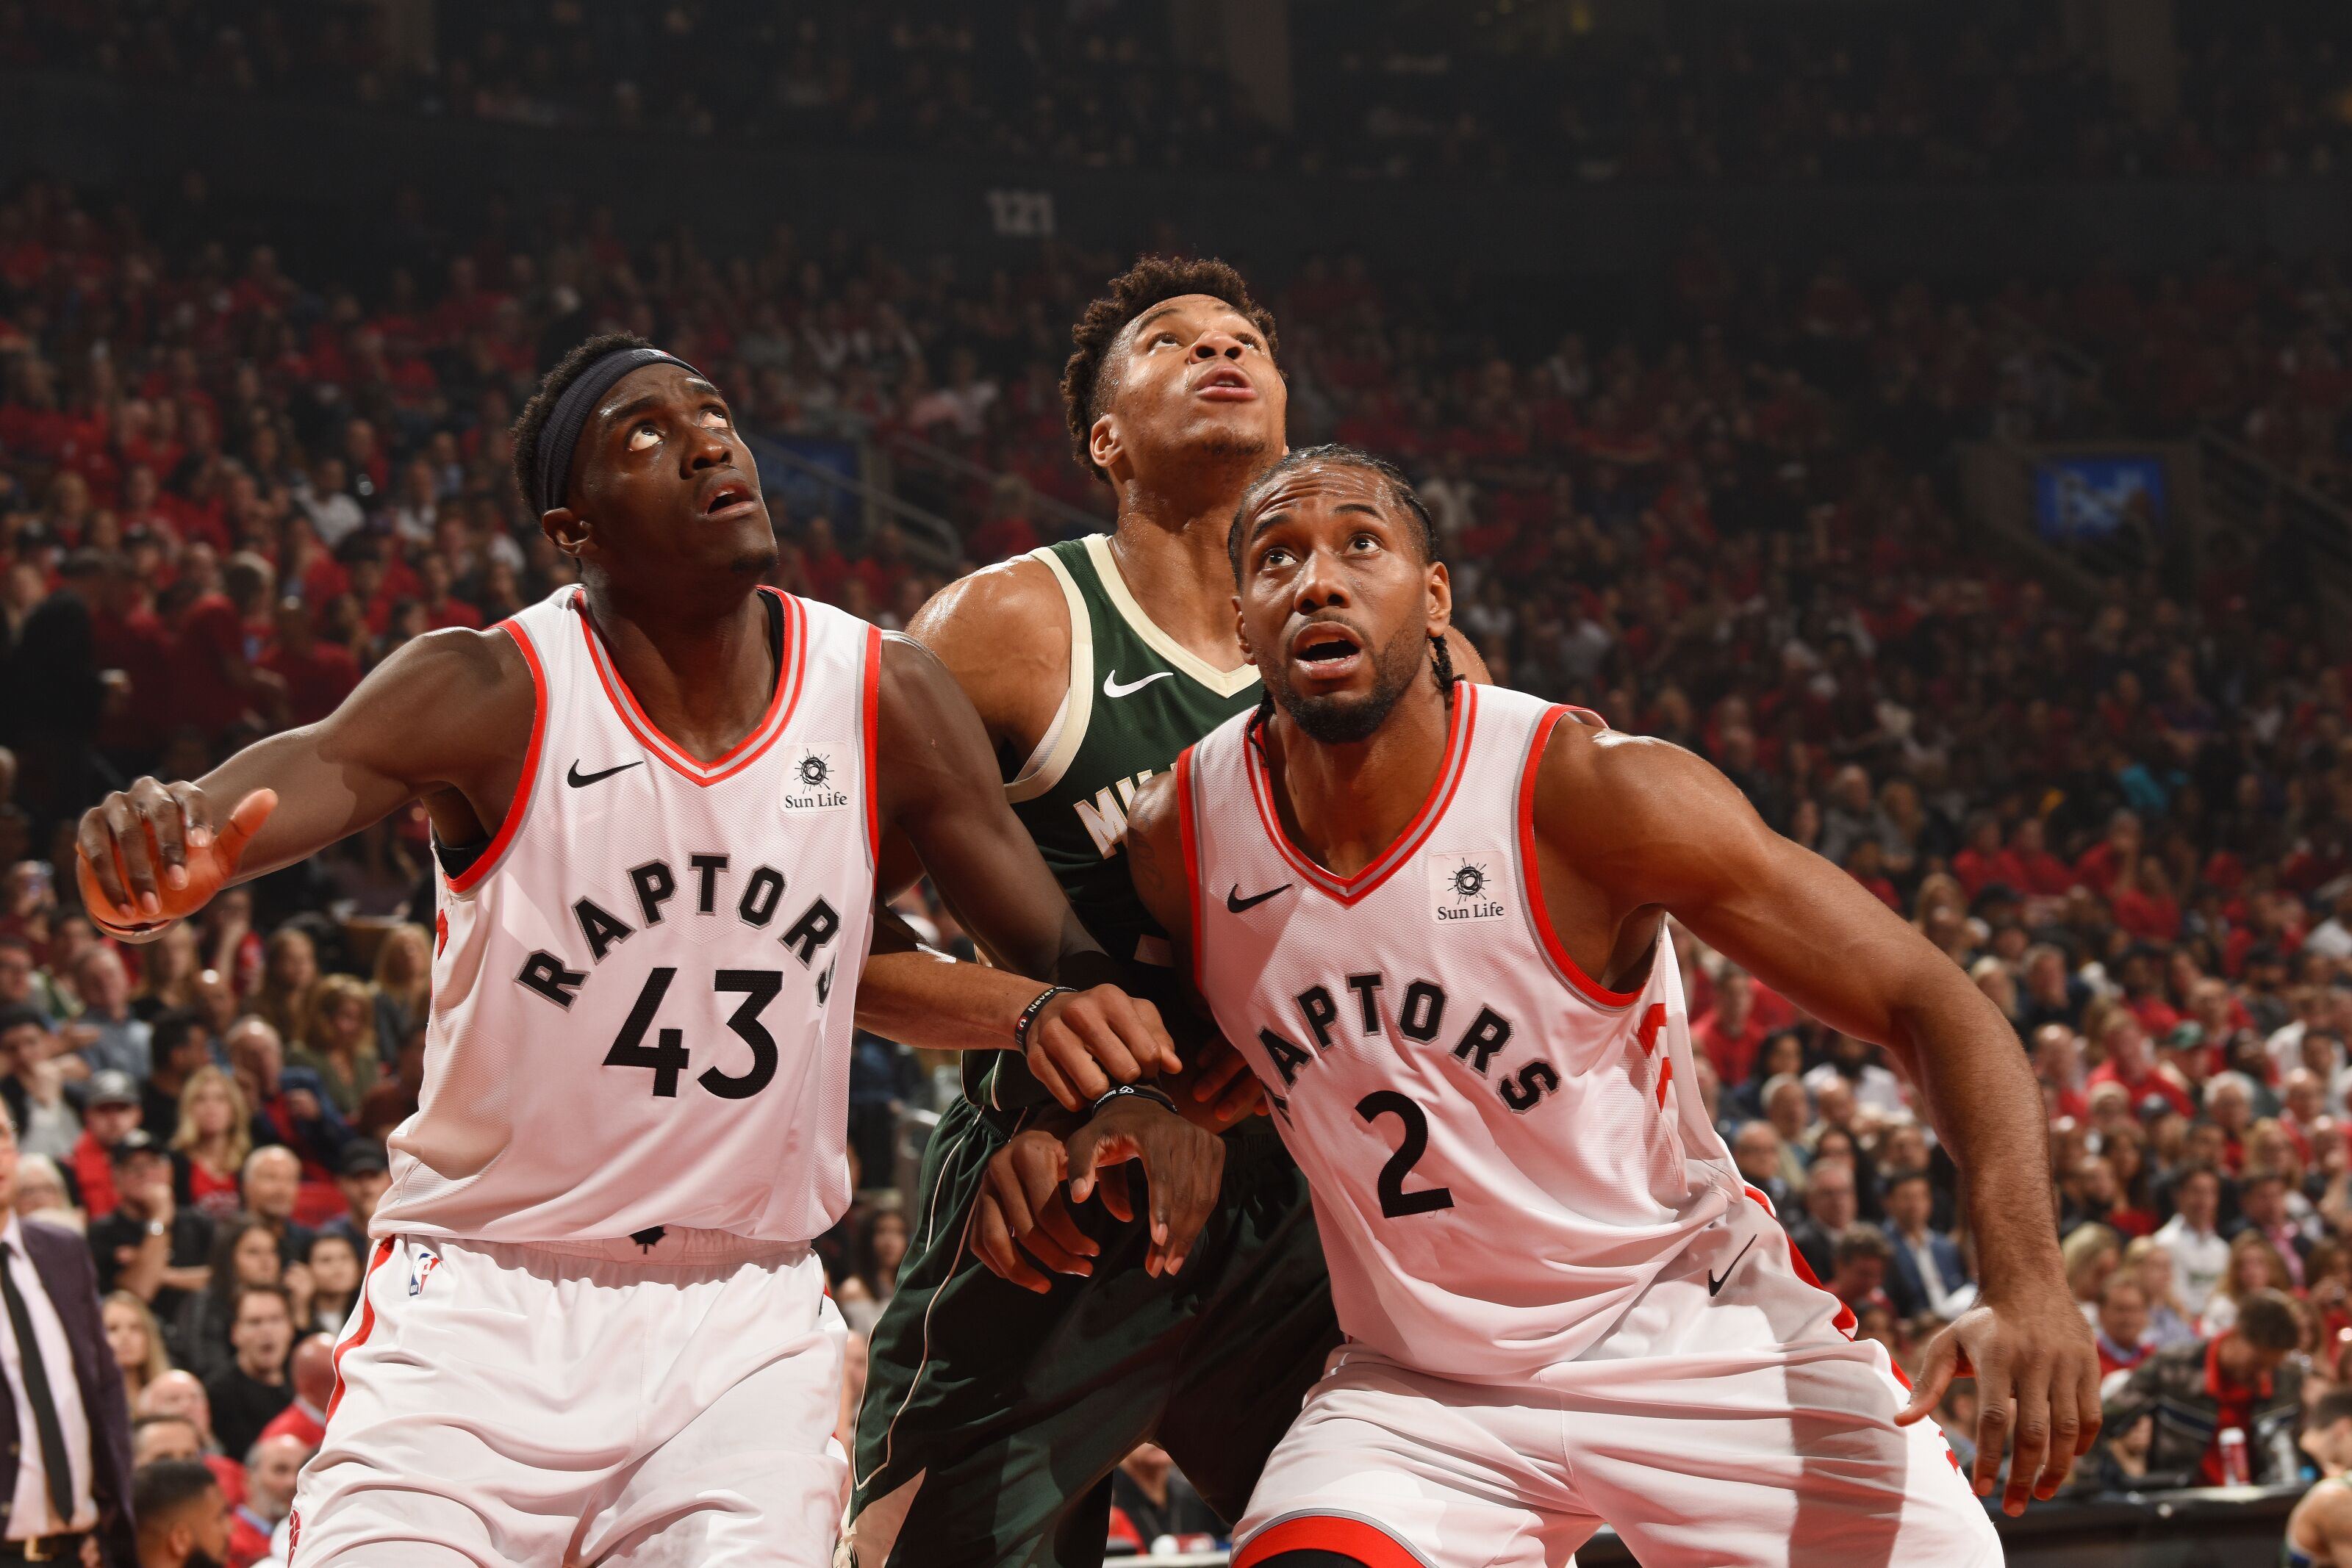 Raptors outlast the Bucks in double overtime to win Game 3